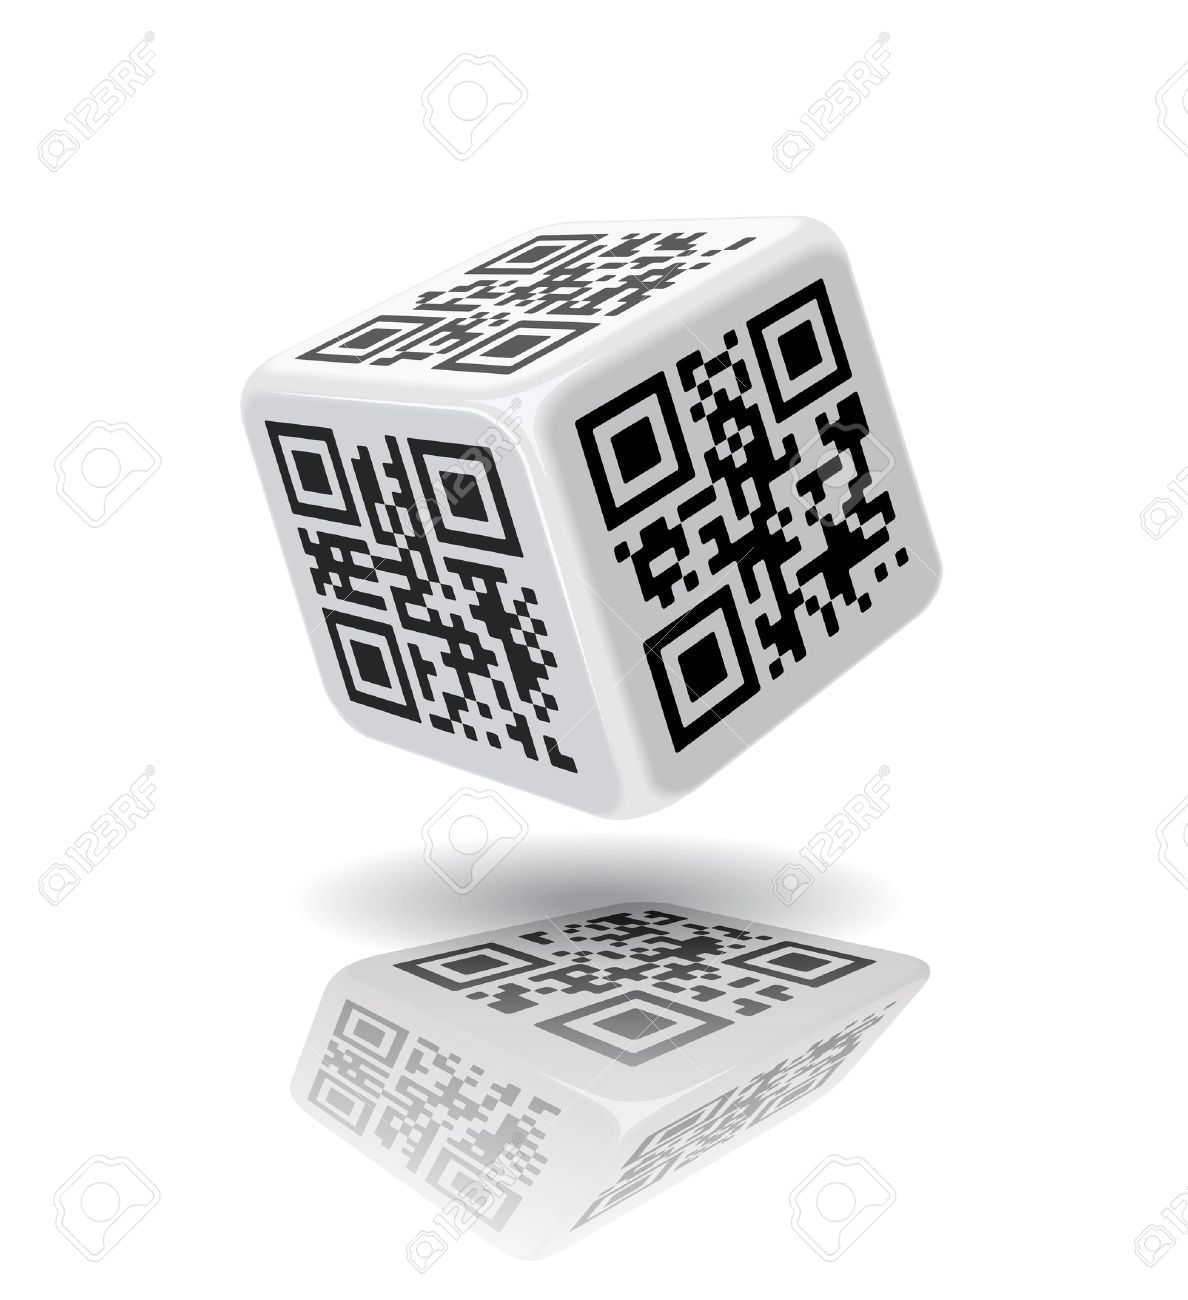 QR-code cube is on the white background - 19443250